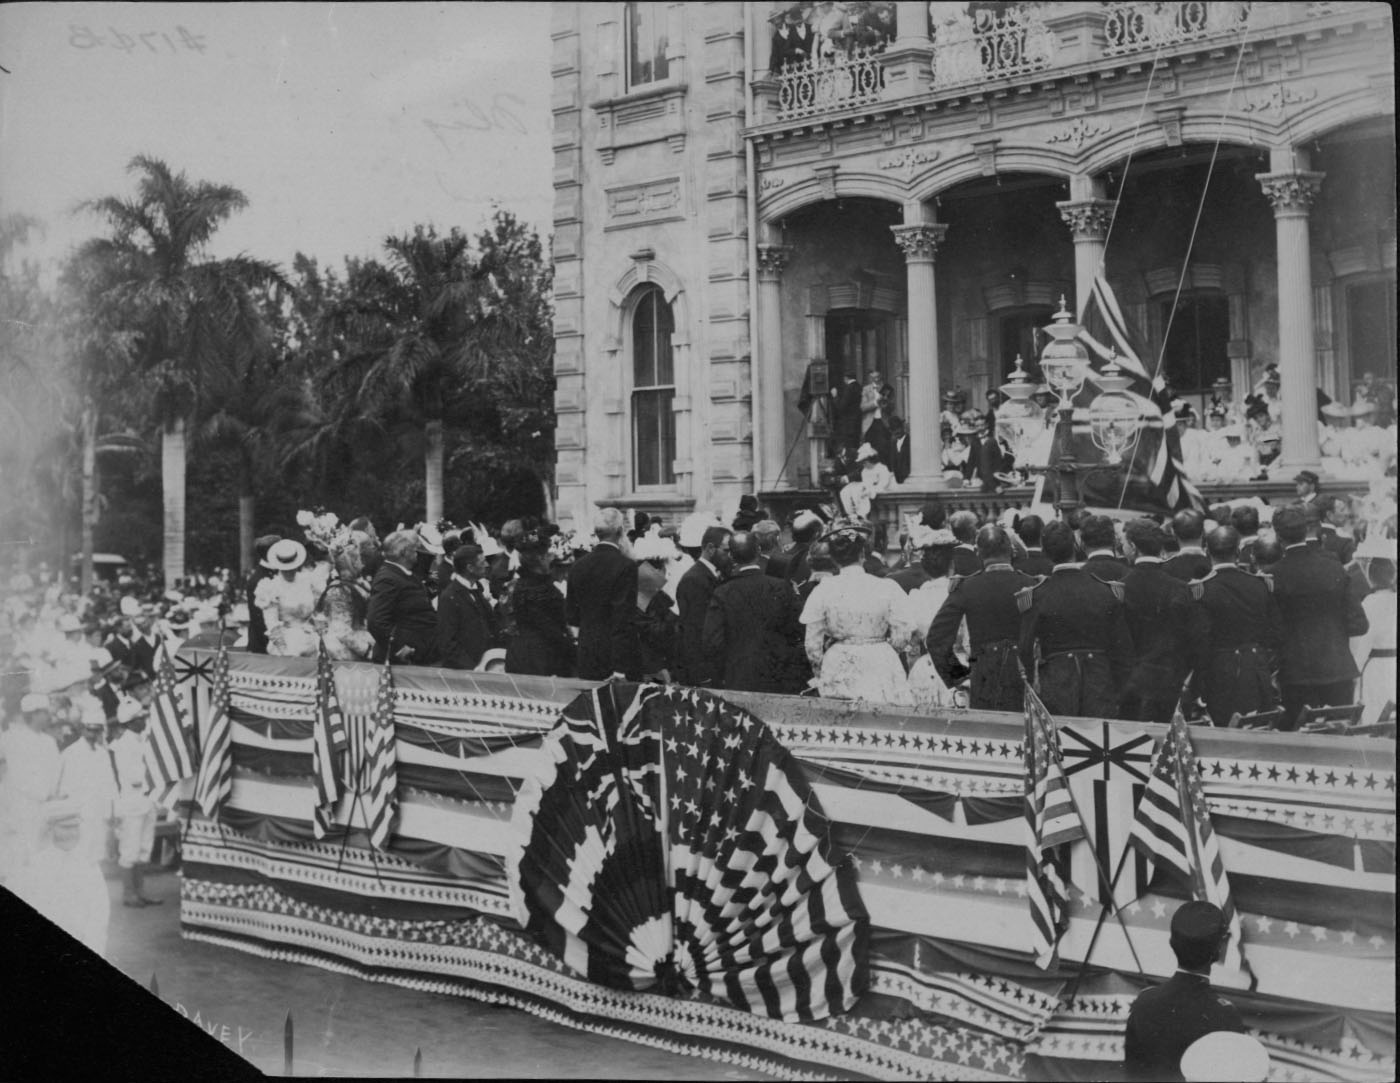 hawaii annexation (1) whether the 1898 annexation was a violation of treaties that were earlier agreements (1875, 1887) between the united states and the kingdom of hawaii, or.